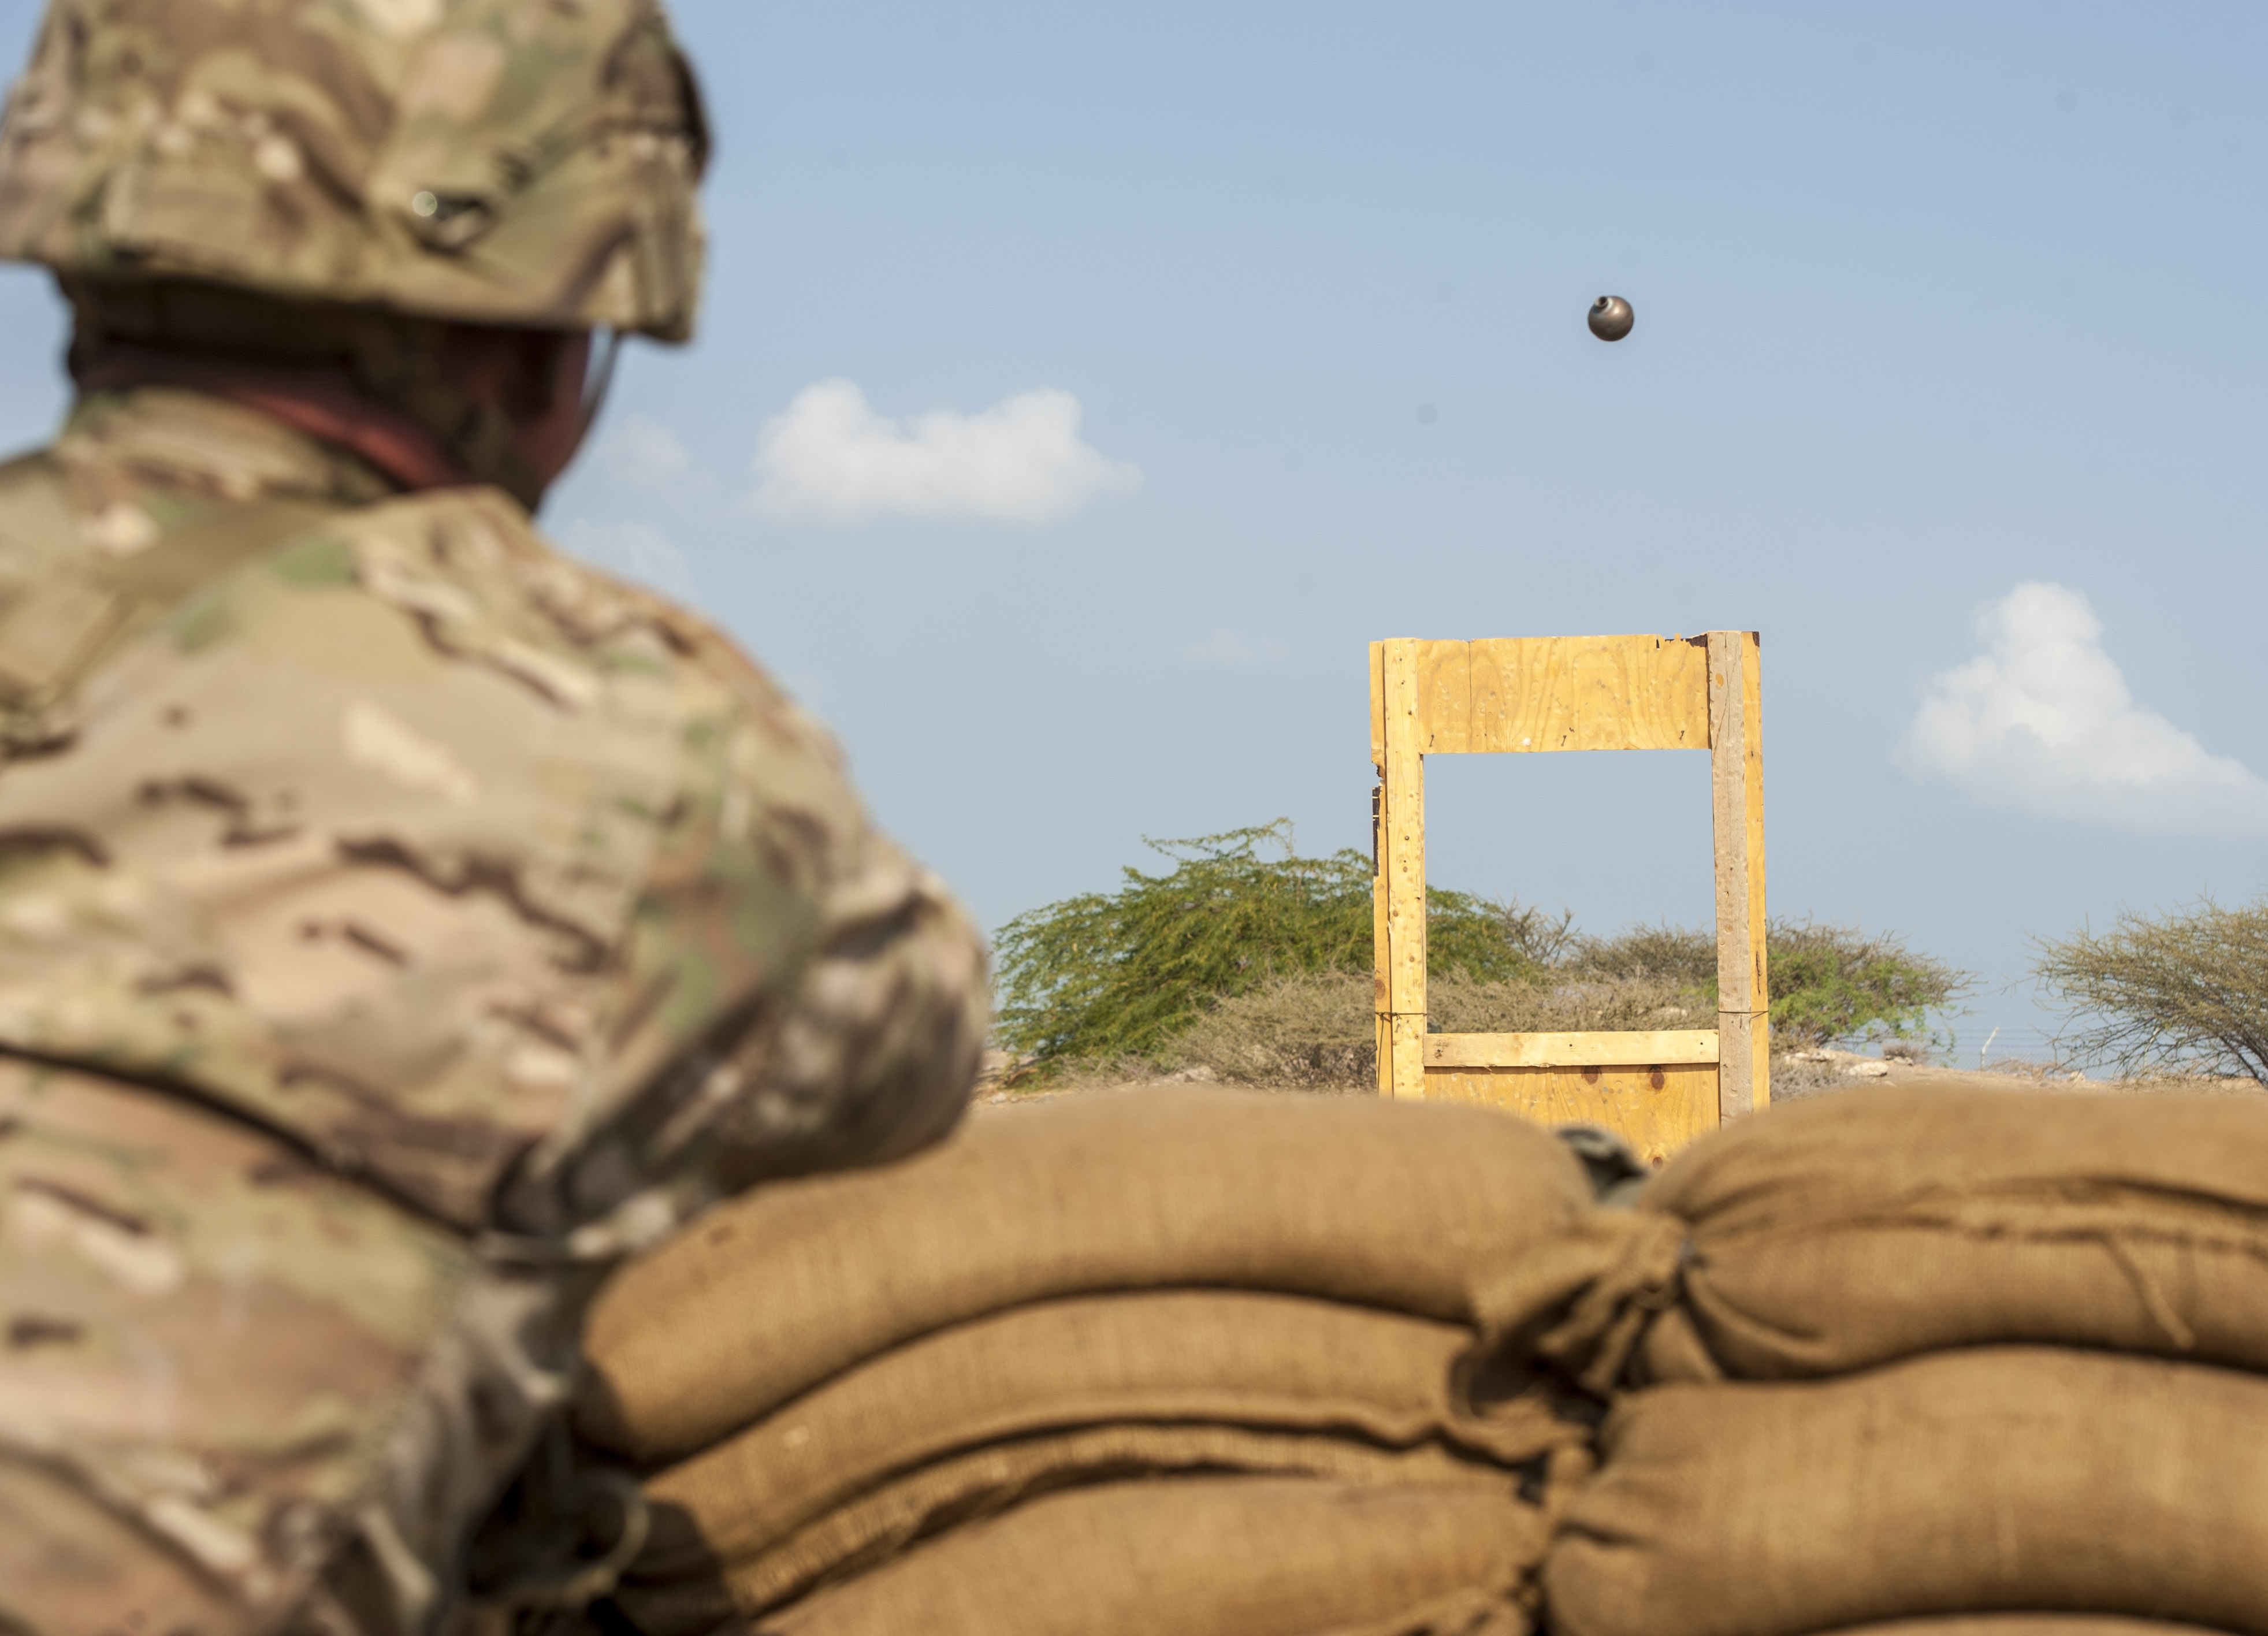 A U.S. Army Soldier assigned to Combined Joint Task Force - Horn of Africa throws a training grenade through a window in preparation for an Expert Infantryman Badge (EIB) evaluation at Camp Lemonnier, Djibouti, Jan. 23, 2018. The EIB is a coveted special skills badge that requires infantry Soldiers to pass a five-day evaluation that consists of an Army Physical Fitness Test, day and night land navigation, a 12-mile forced march, and 30 individual tasks covering weapons, medical, and security patrol skills. In an April 2016 EIB iteration at Camp Lemonnier, only 15 percent of candidates earned the badge. (U.S. Air Force photo by Staff Sgt. Timothy Moore)